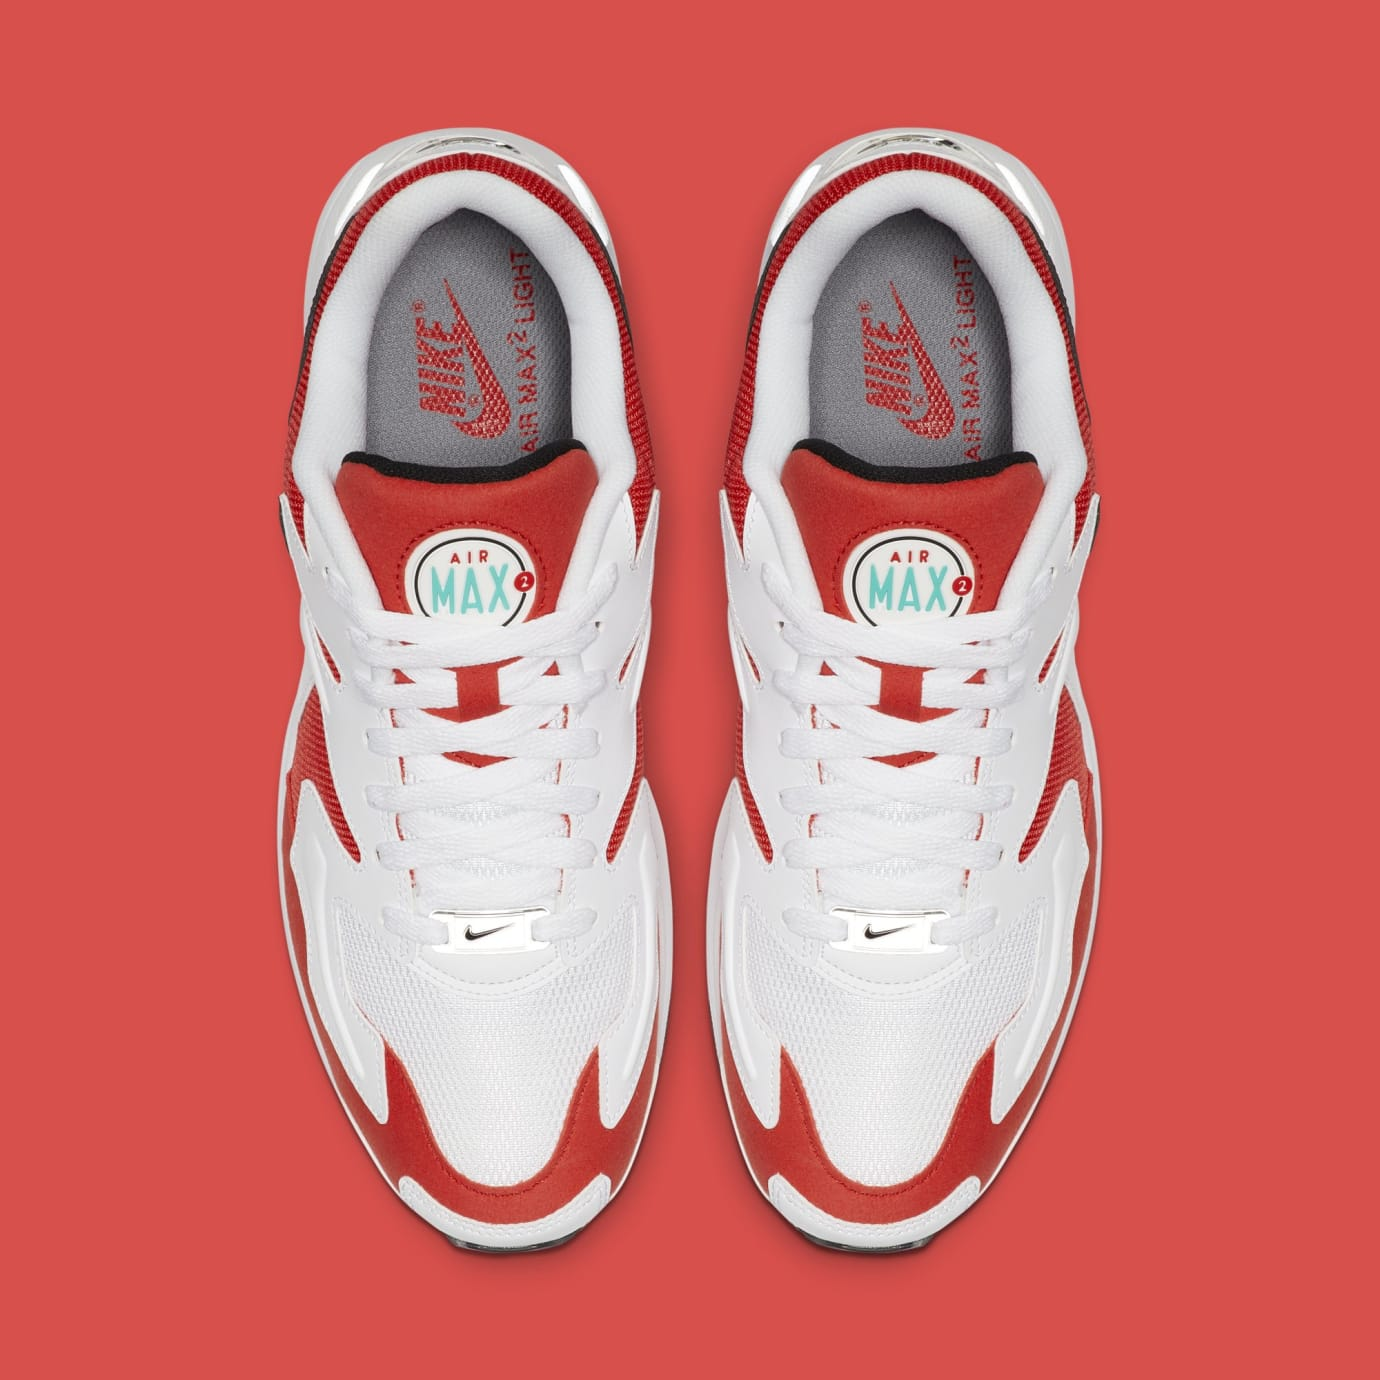 Nike Air Max2 Light 'White/Black-Habanero Red-Cool Grey' AO1741-101 (Top)